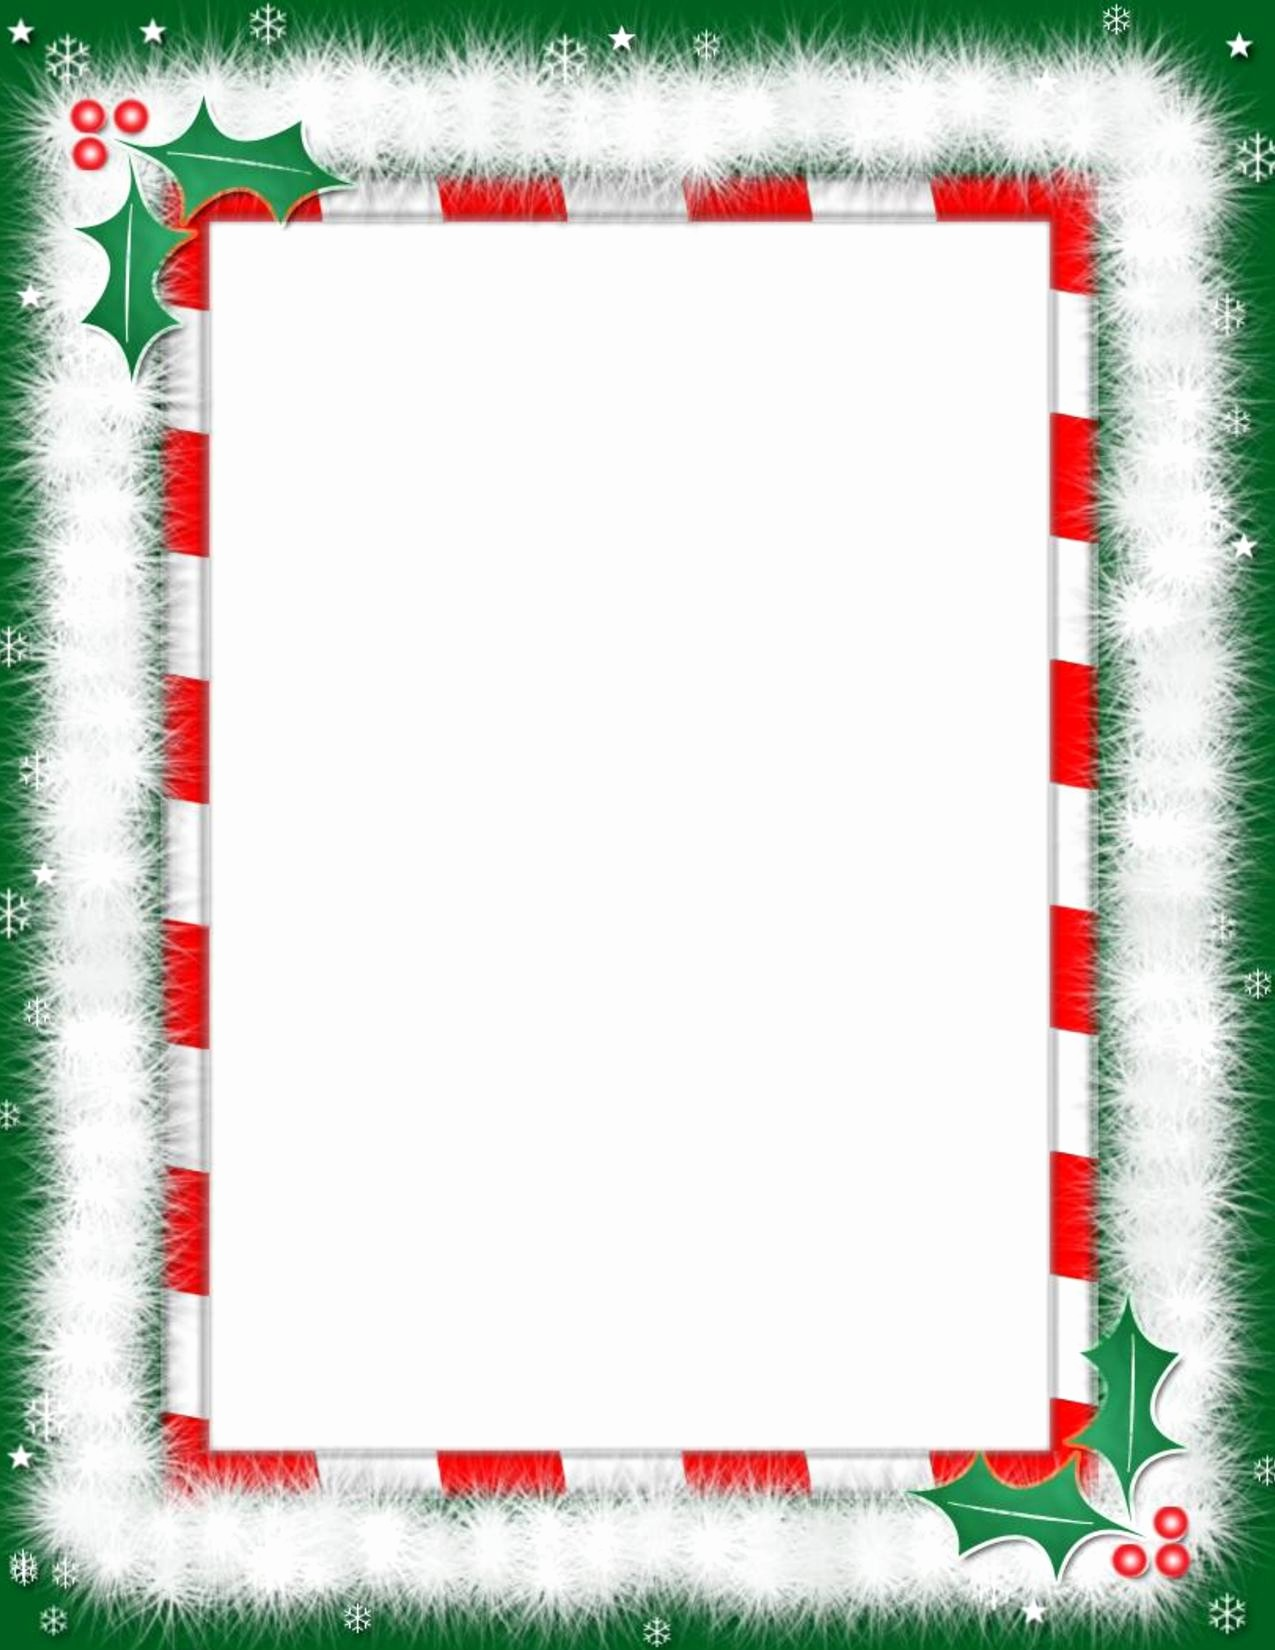 Holiday Paper Templates Free Download Inspirational Christmas Border for Free Download